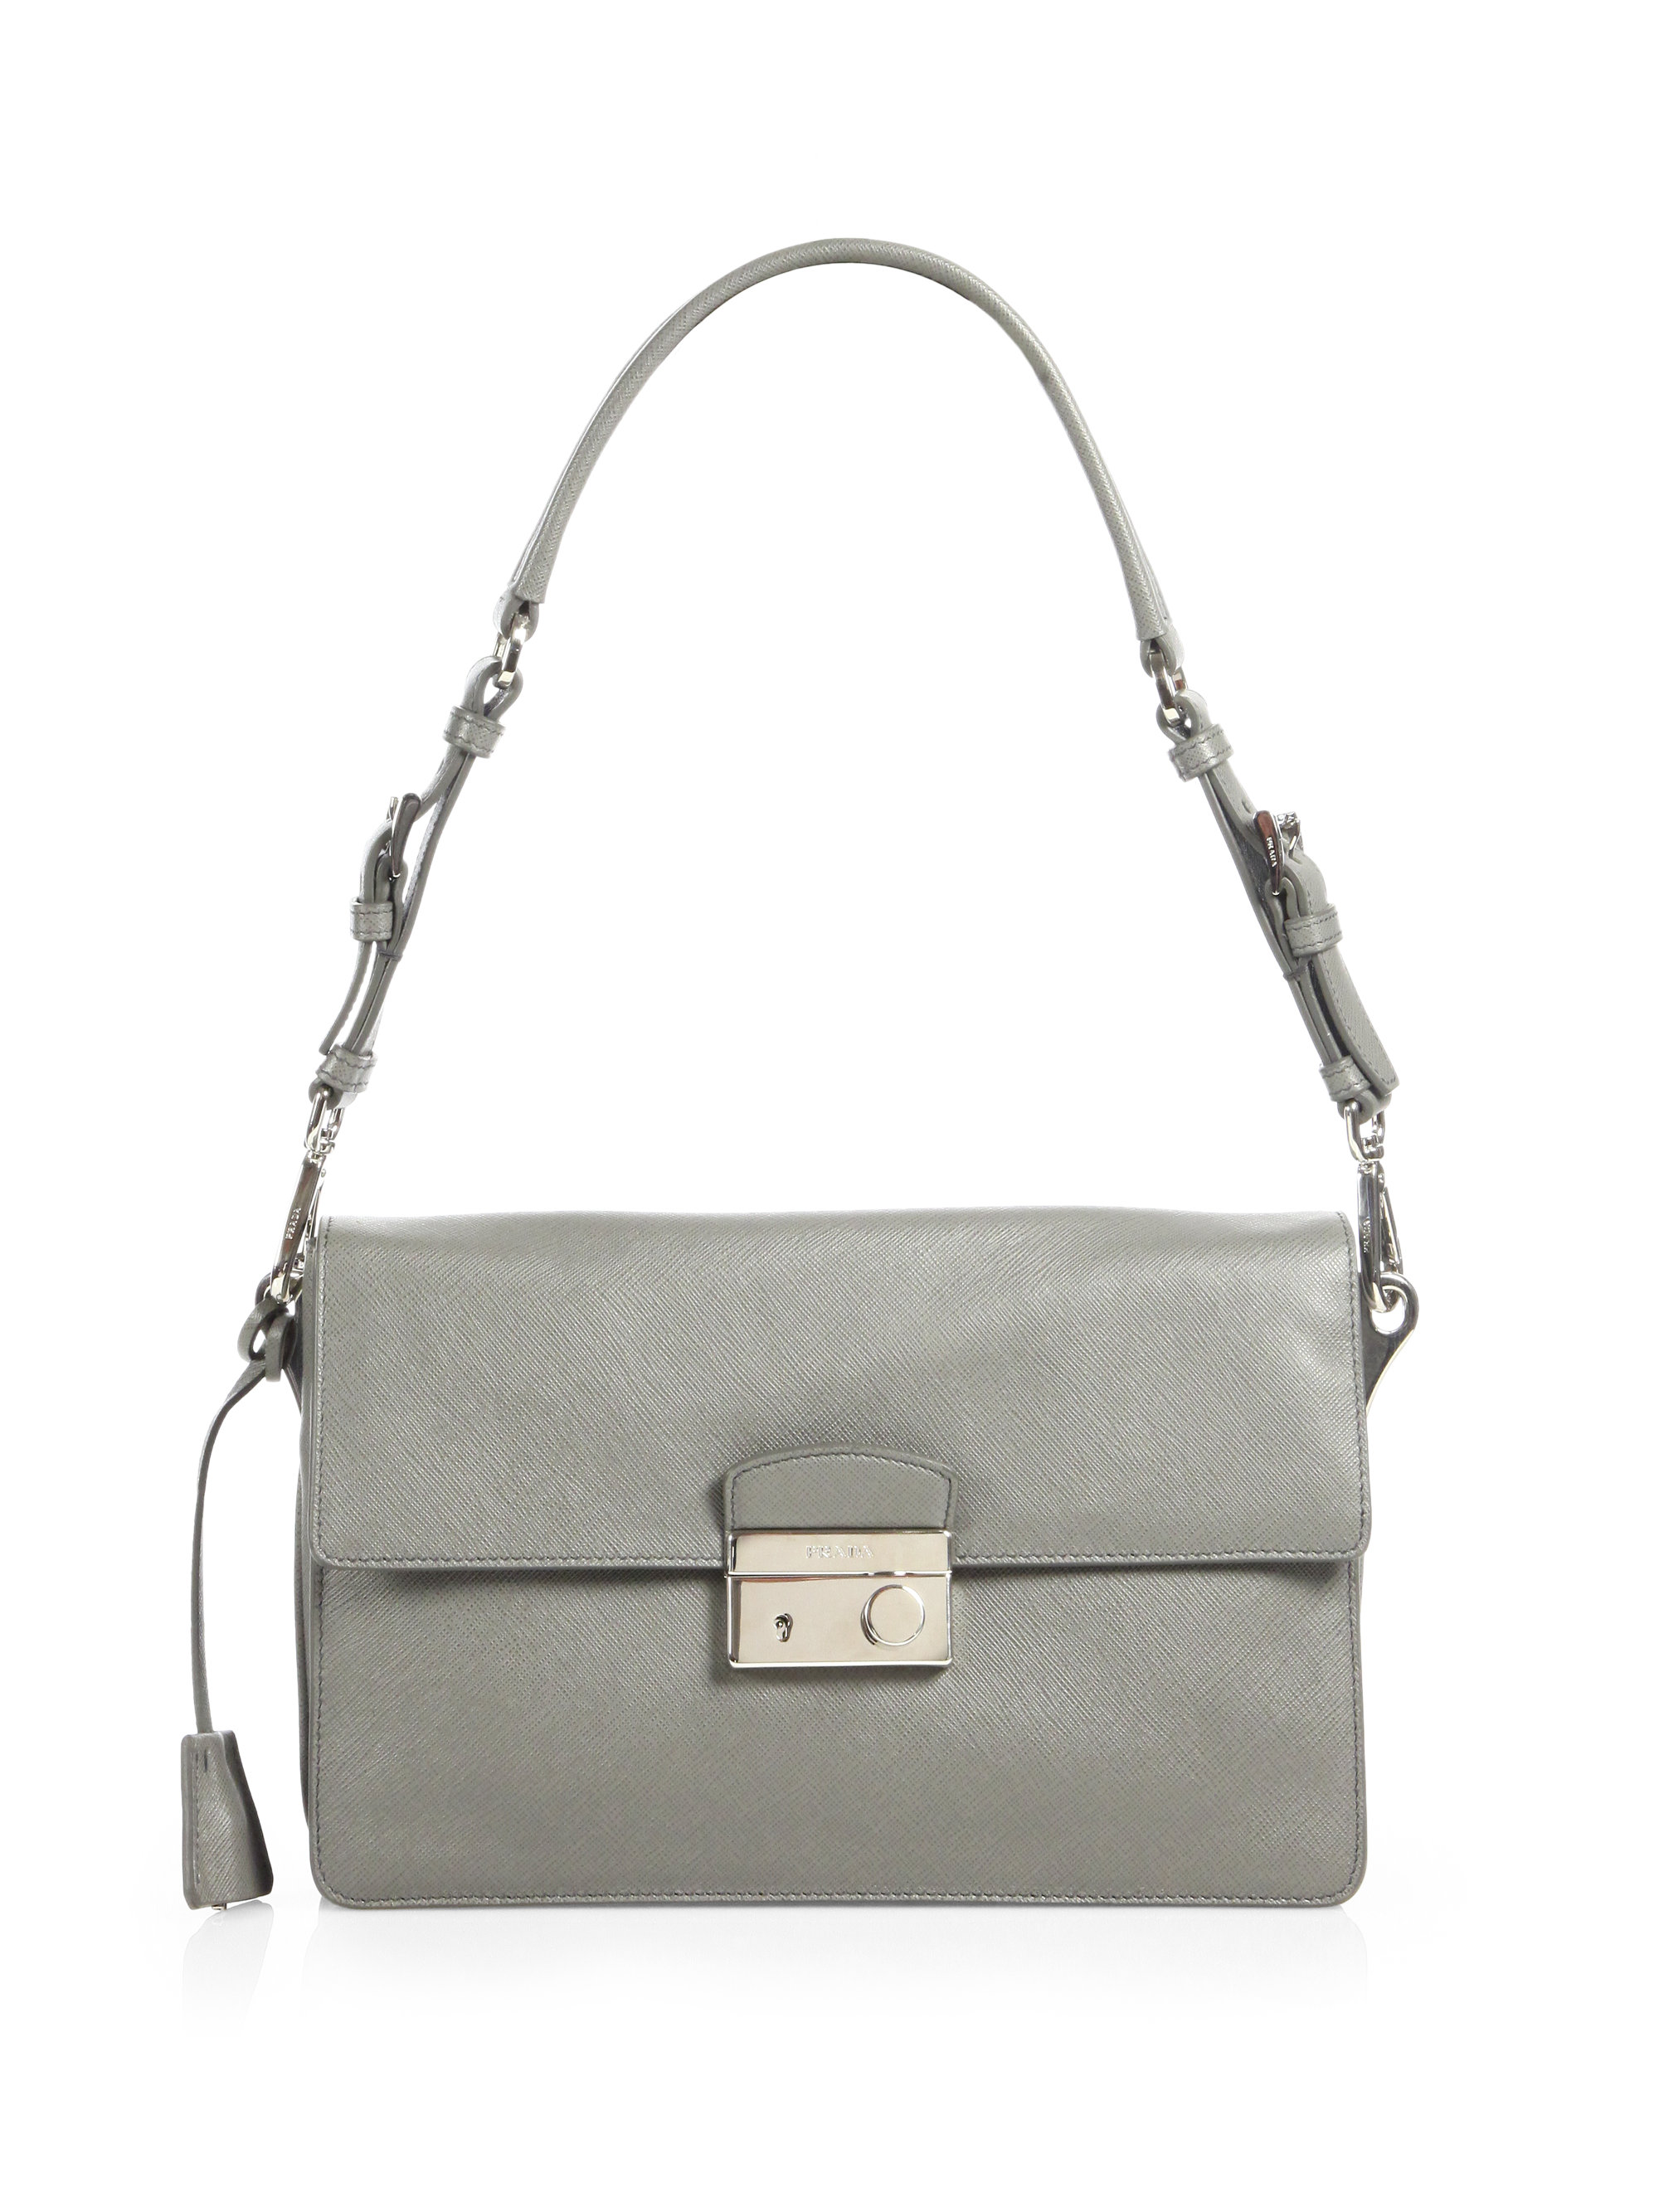 Prada Saffiano Soft Sound Bag in Gray (GREY) | Lyst